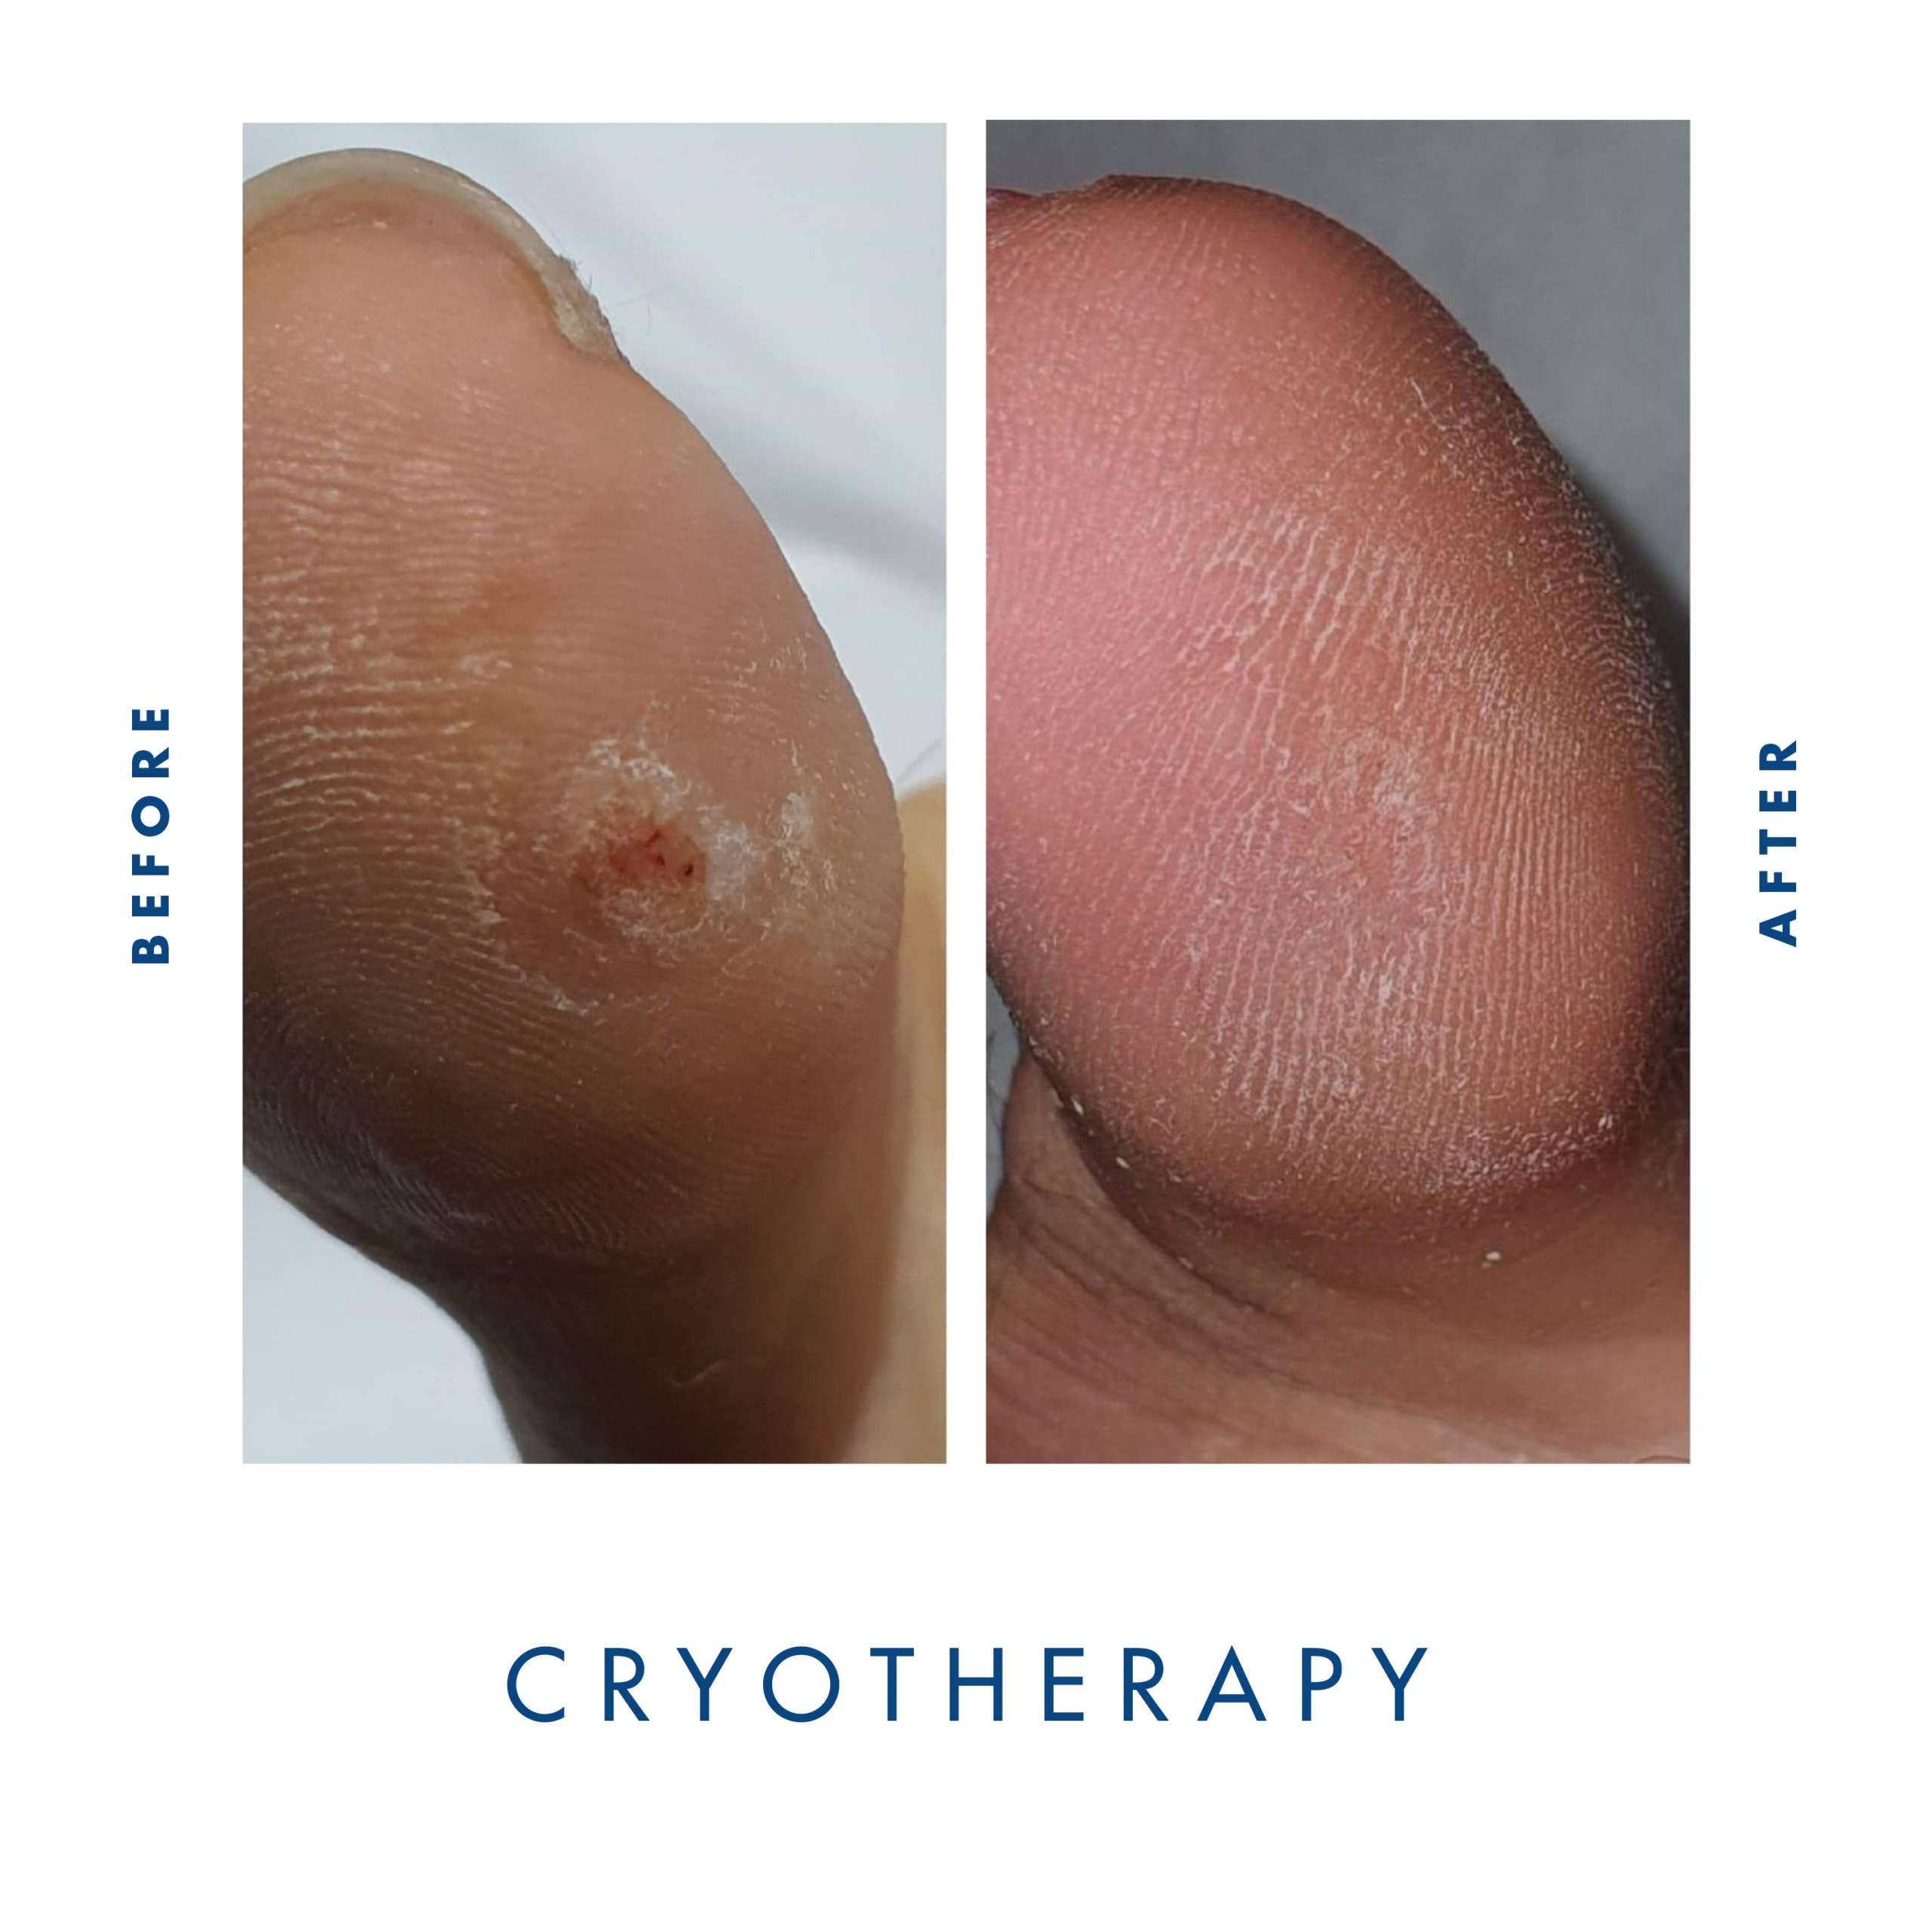 Cryotherapy Verrucae treatment